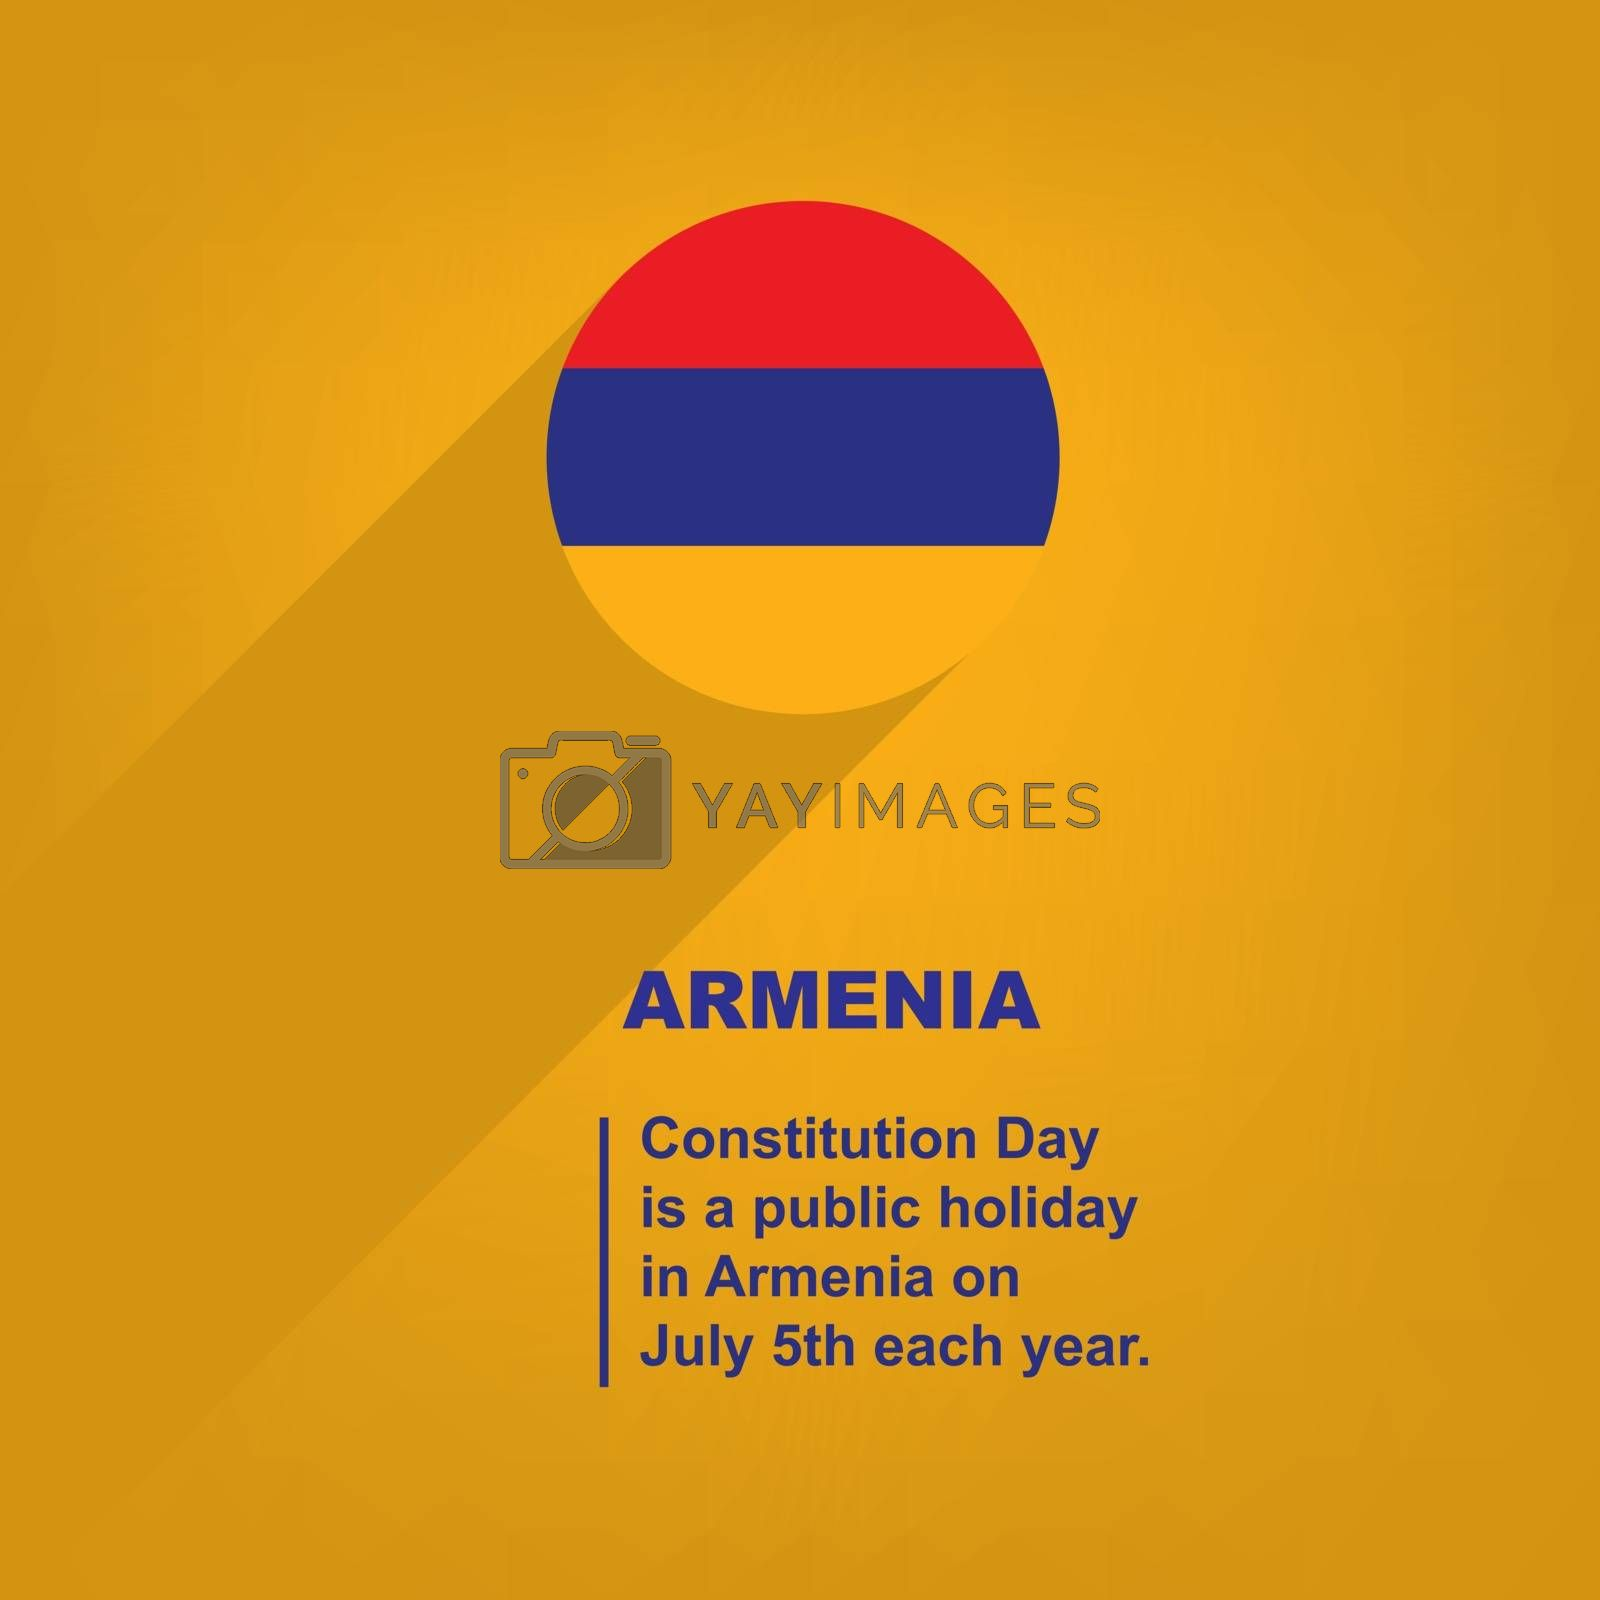 Royalty free image of Constitution Day Armenia by VIPDesignUSA